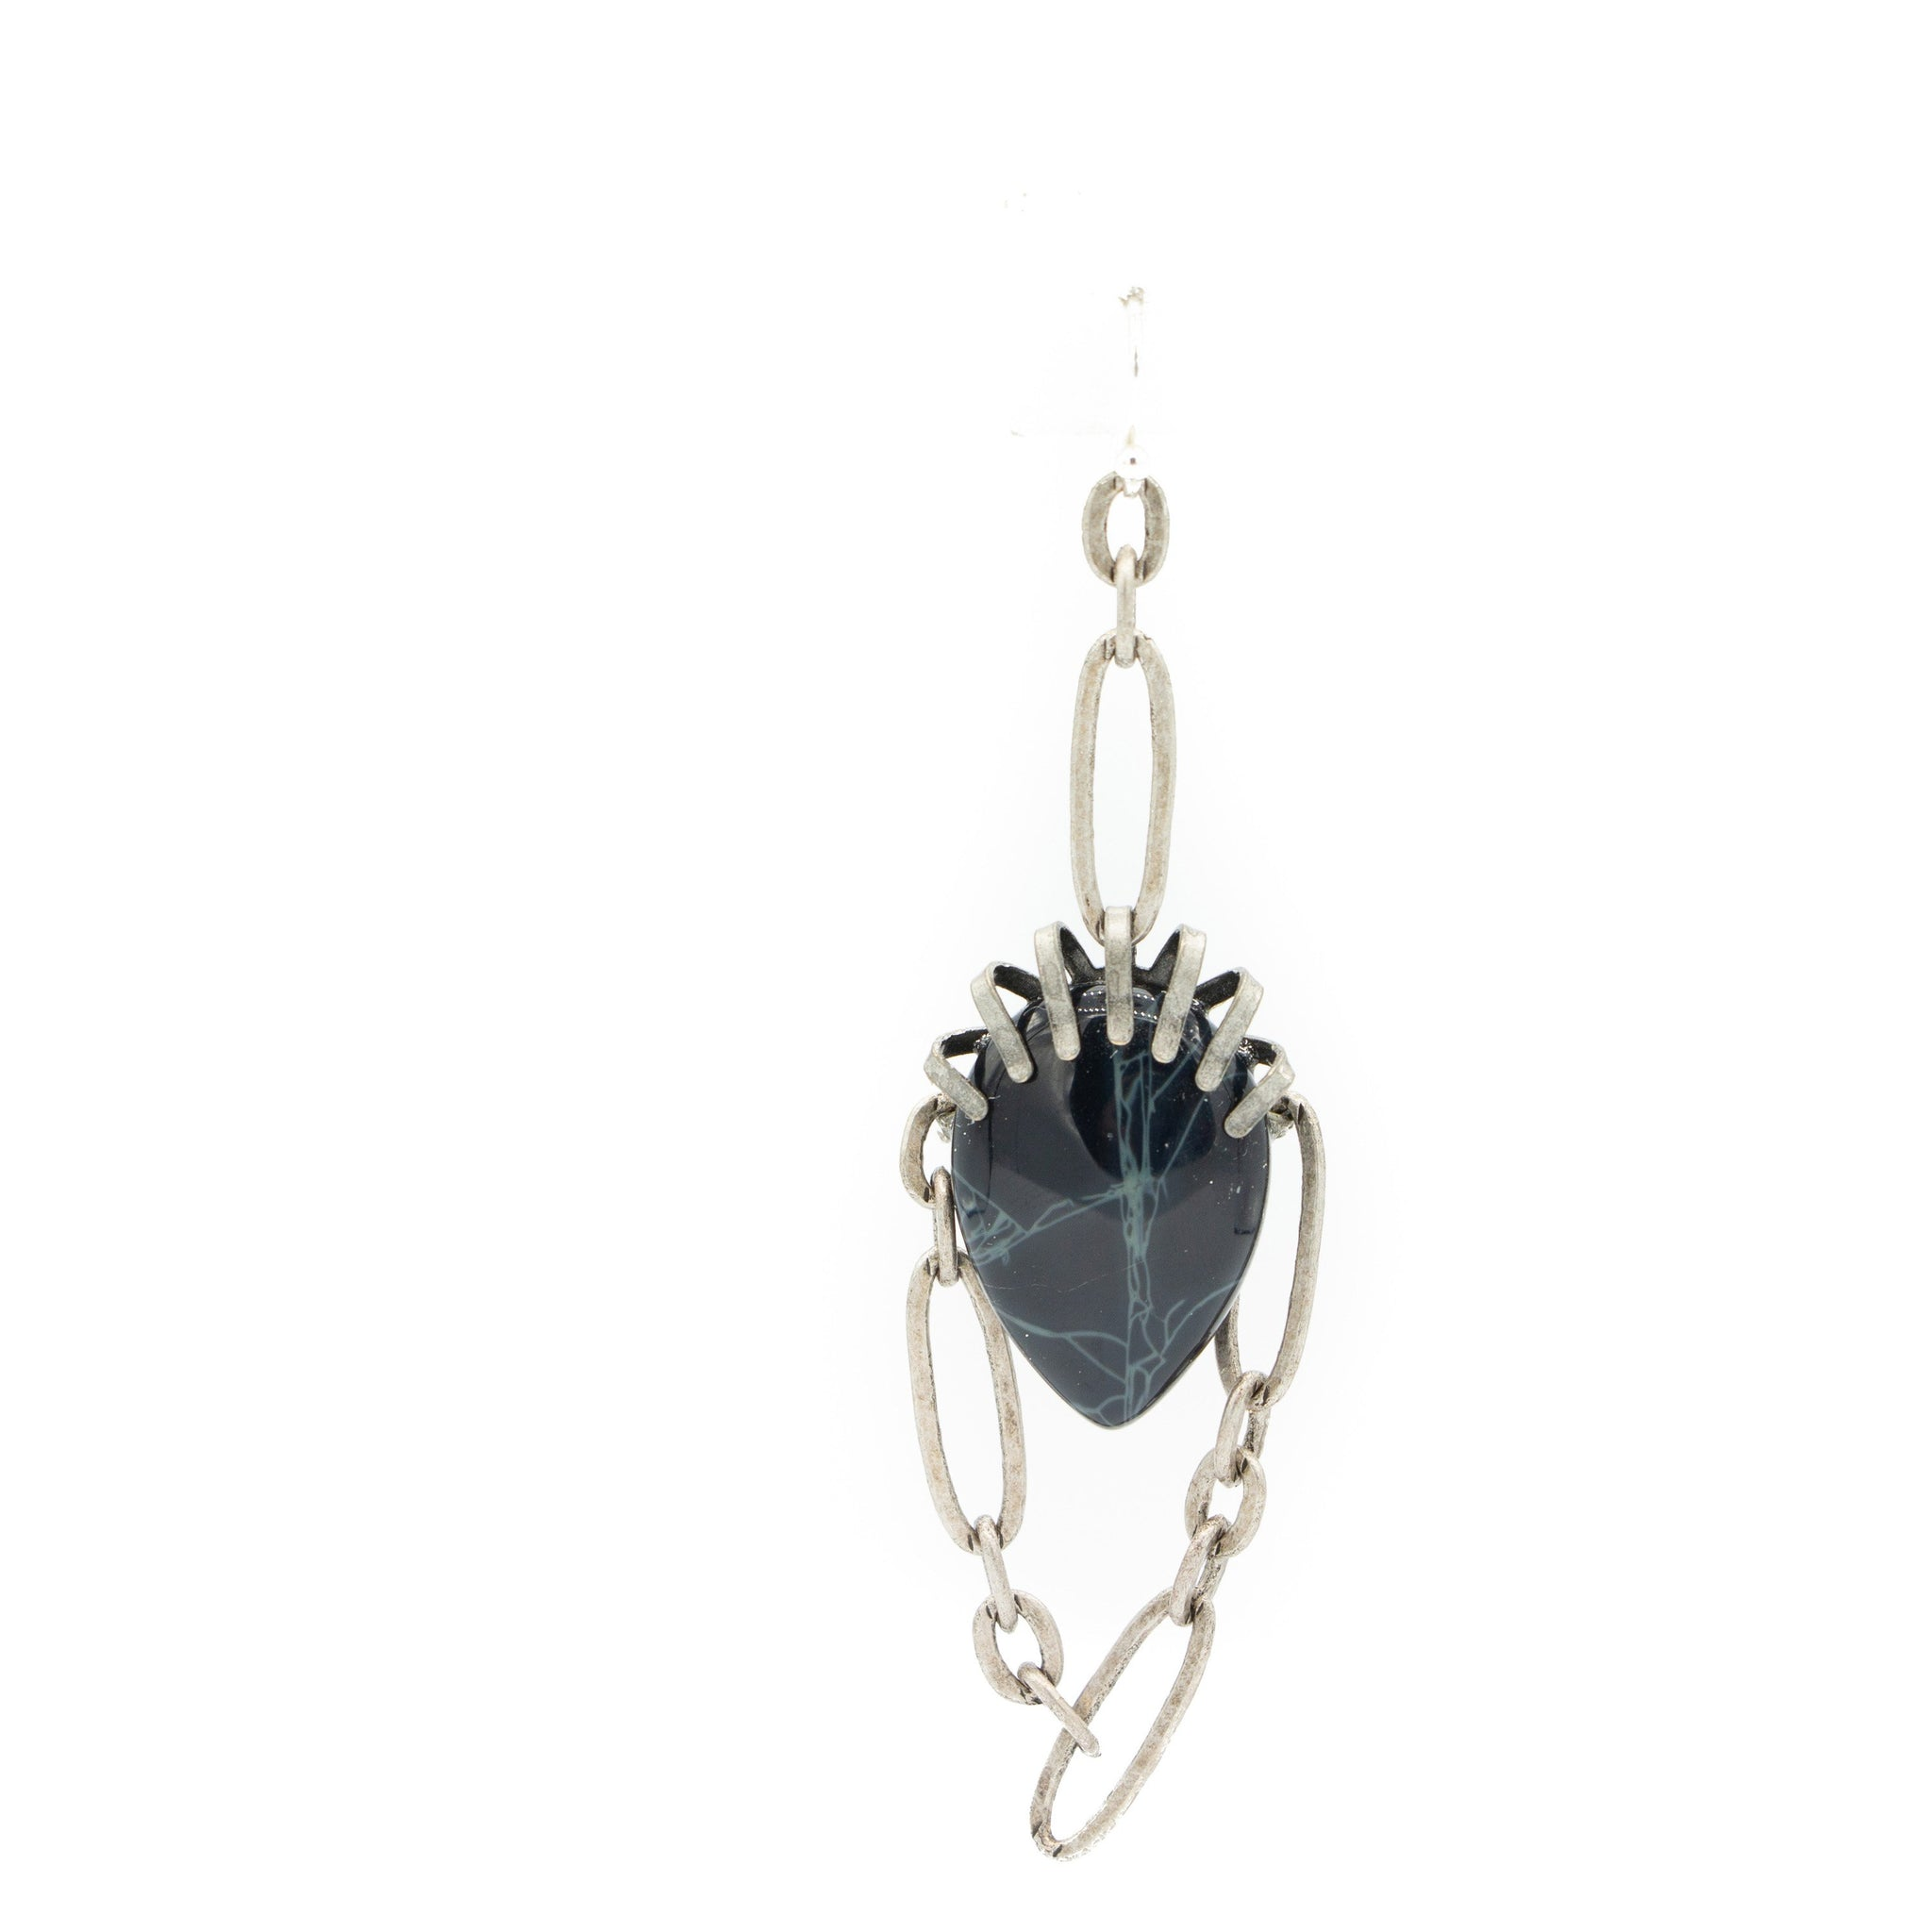 Single Striated Black Agate & Chain Earring